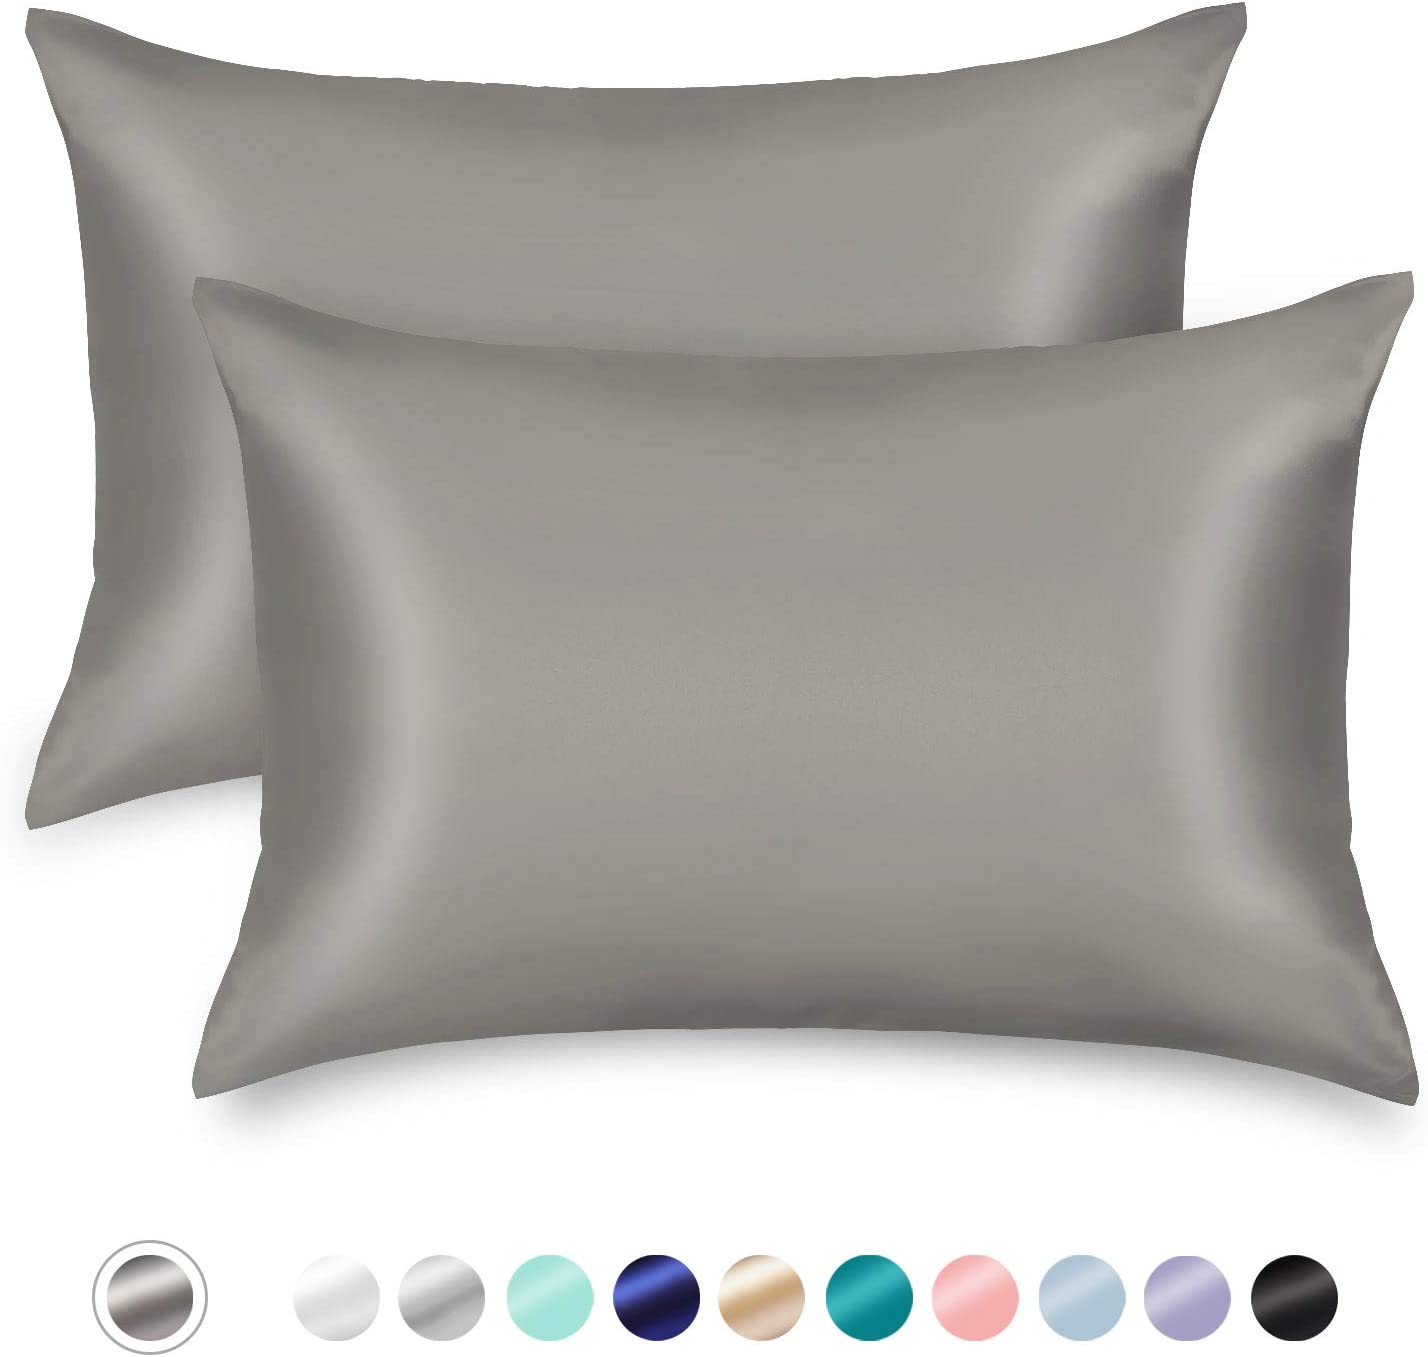 ZAMAT Silky Satin Pillowcases Set of 2, Luxury Soft Pillow Case for Hair and Skin, Wrinkle, Fade Resistant, Cooling Pillow Cover with Envelope Closure (Dark Grey, Queen)